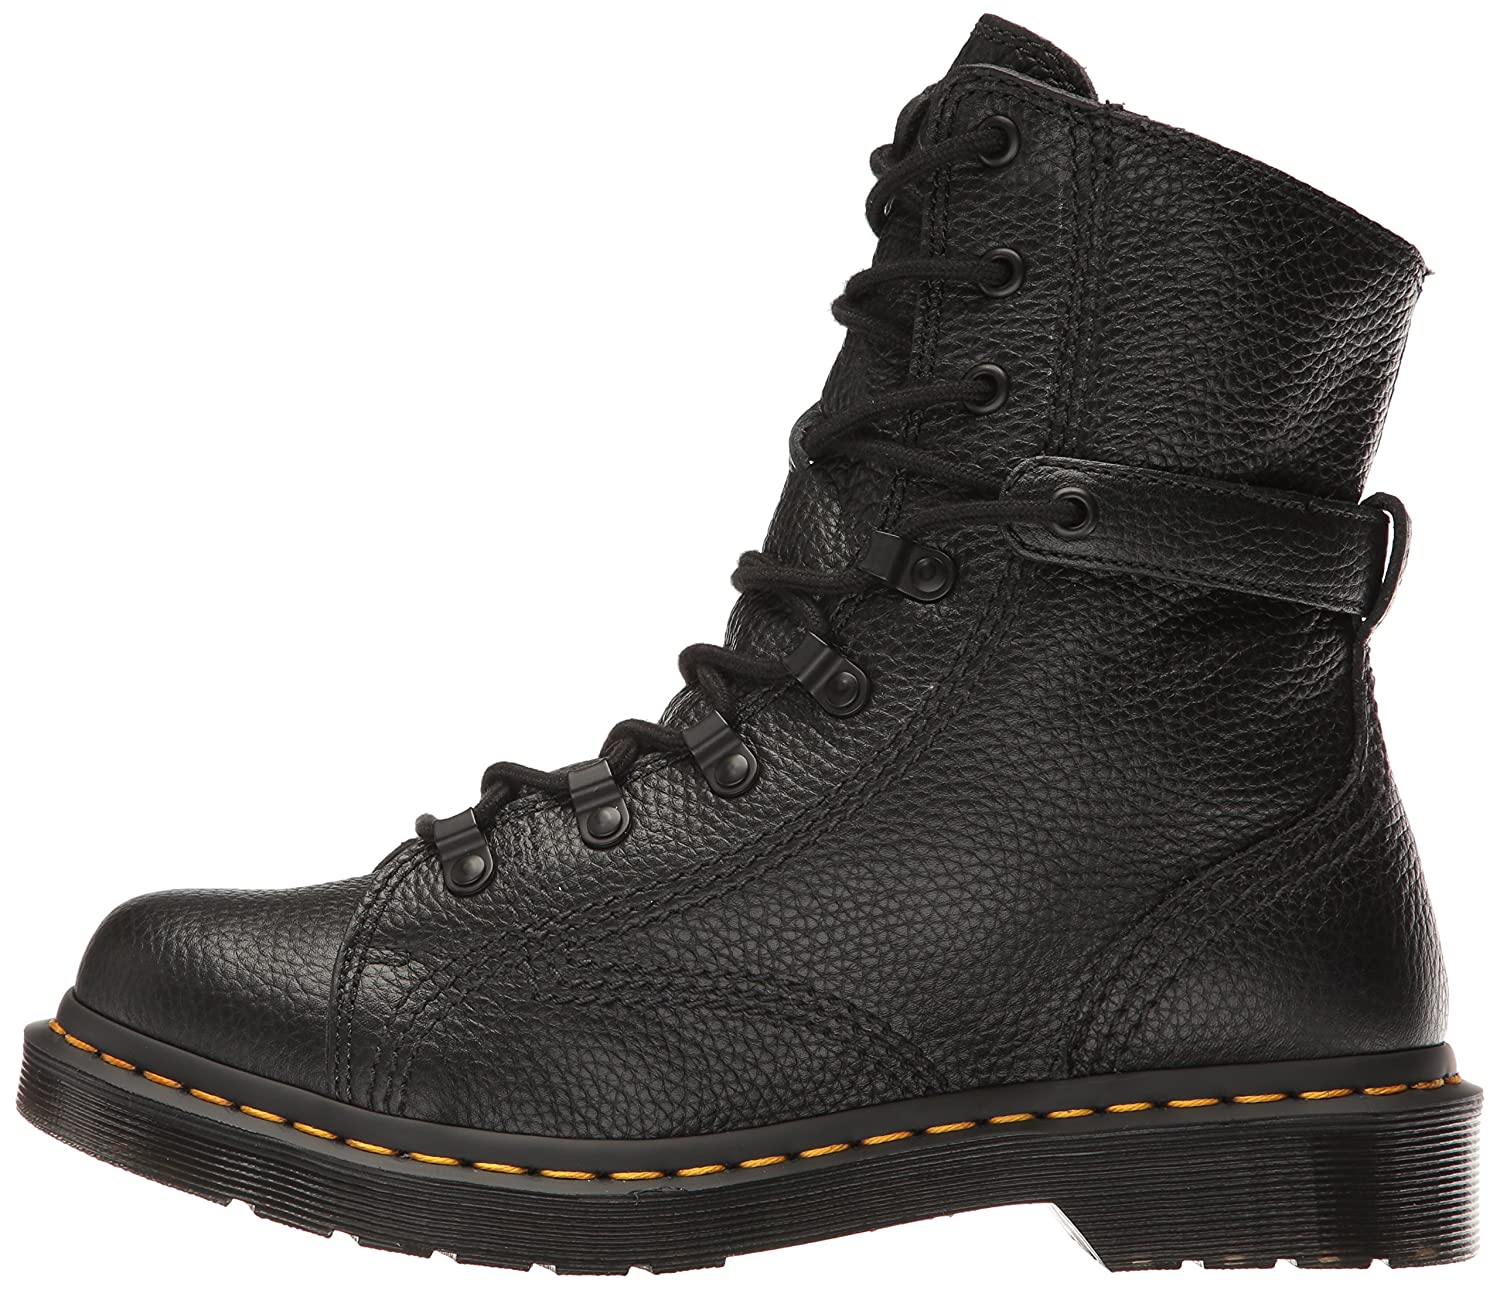 Dr. Martens Women's Coraline in Boot Aunt Sally Leather Combat Boot in B01IDY8RSQ 9 Medium UK (11 US)|Black Aunt Sally e7a4ed